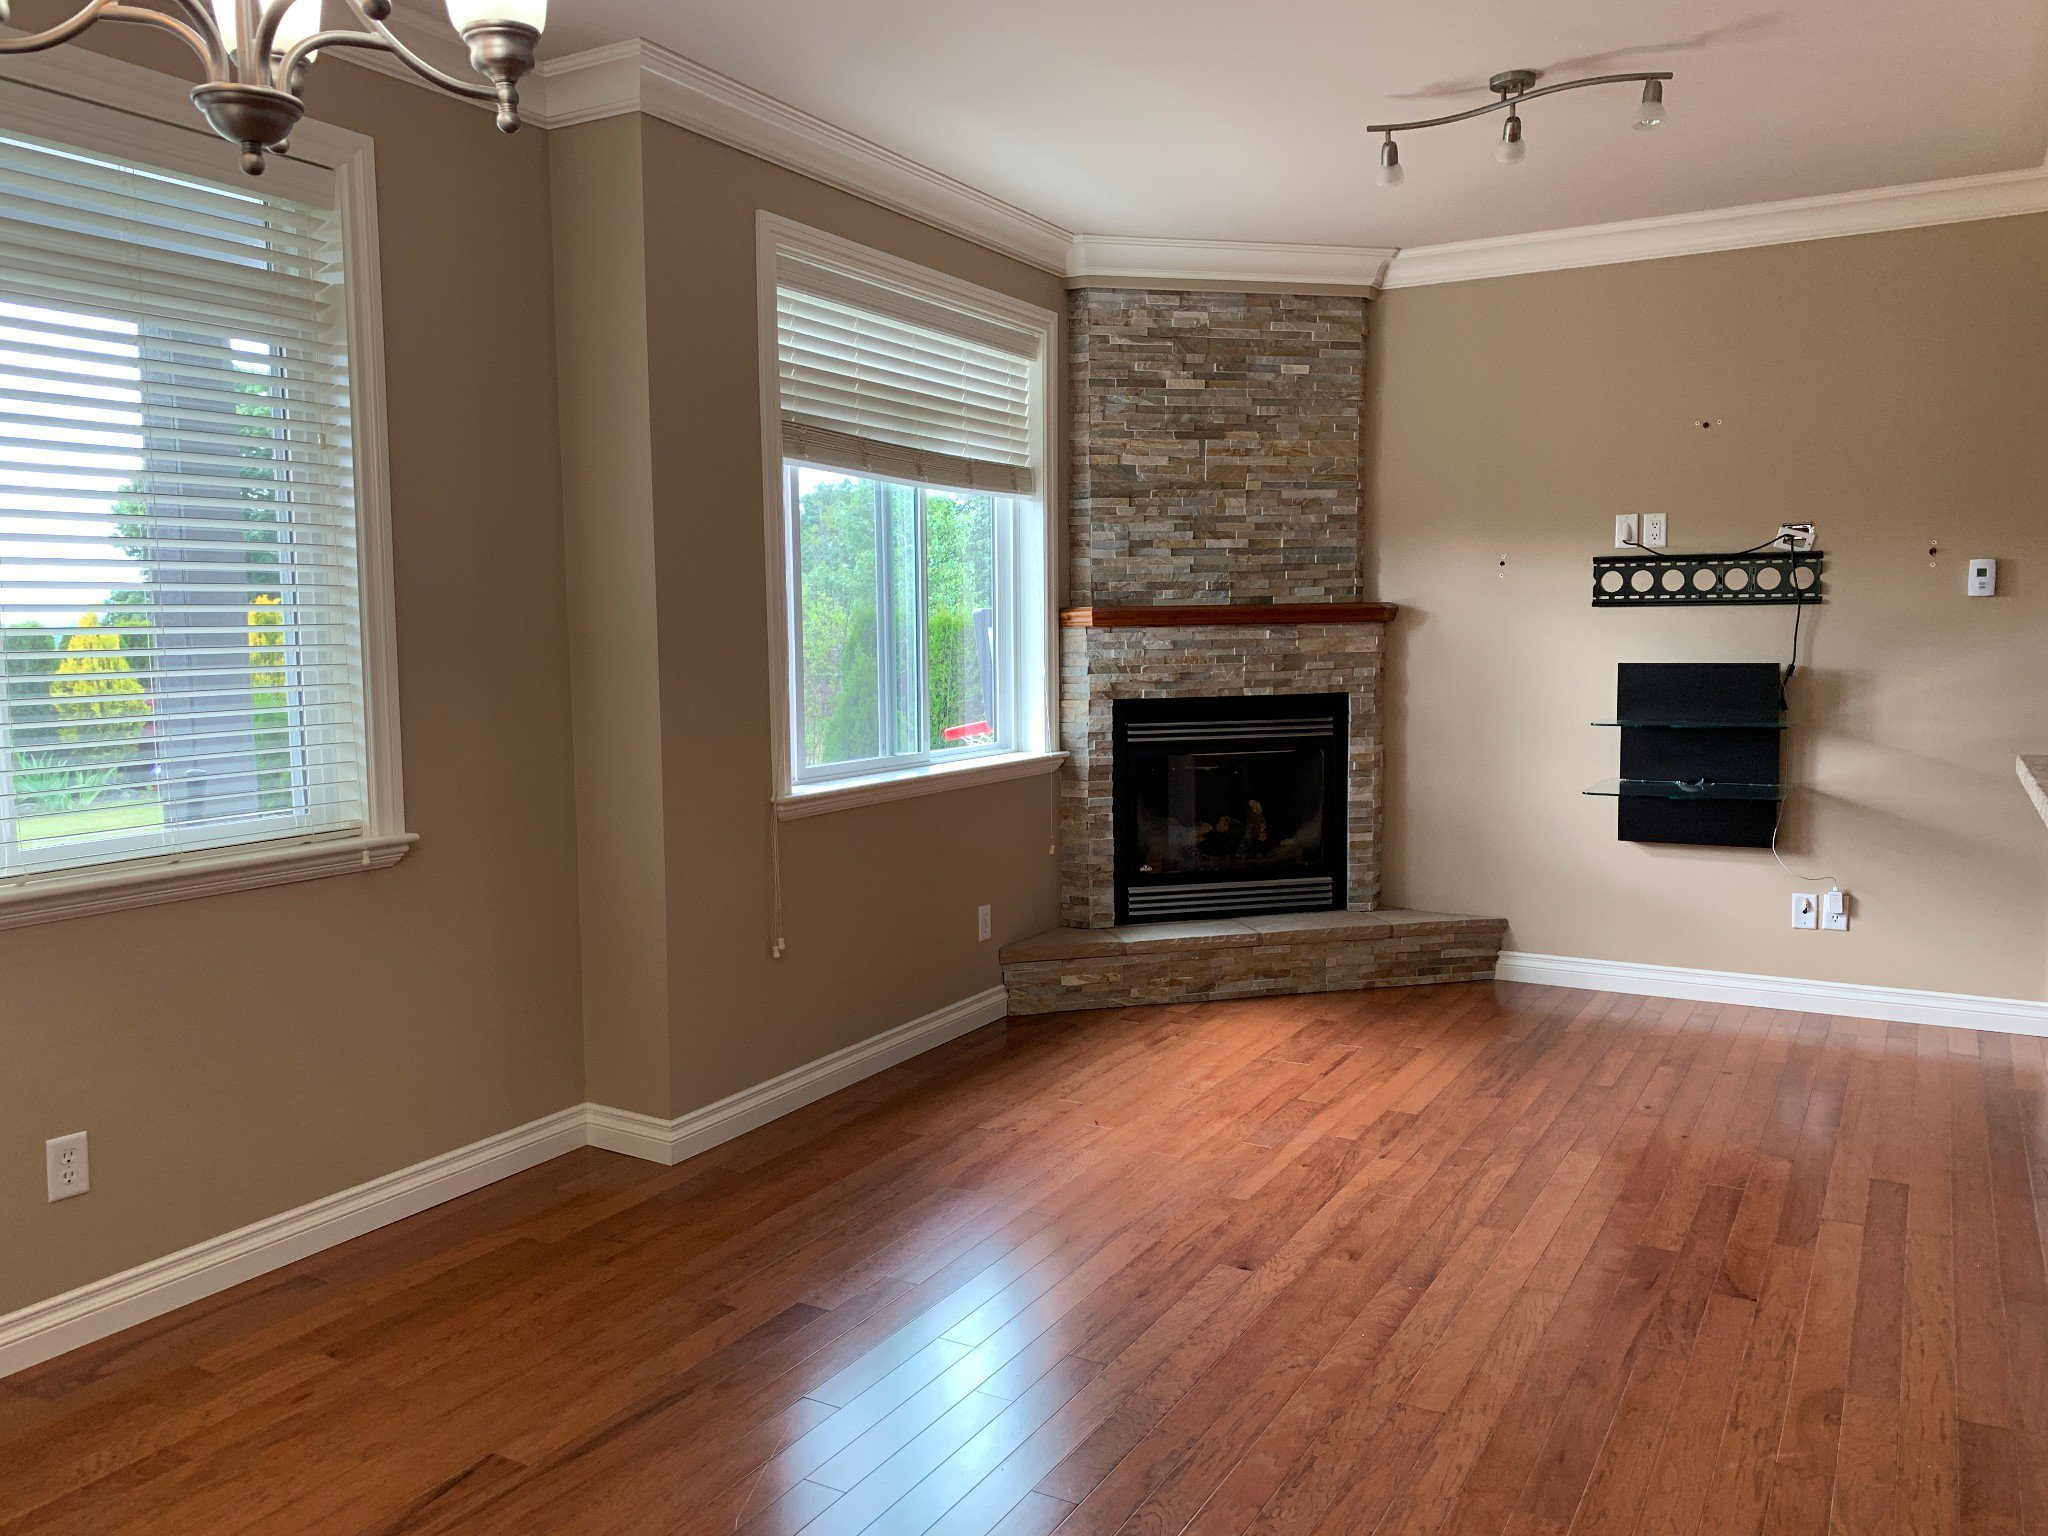 Photo 5: Photos: BSMT 3975 Caves Court in Abbotsford: Abbotsford East Condo for rent